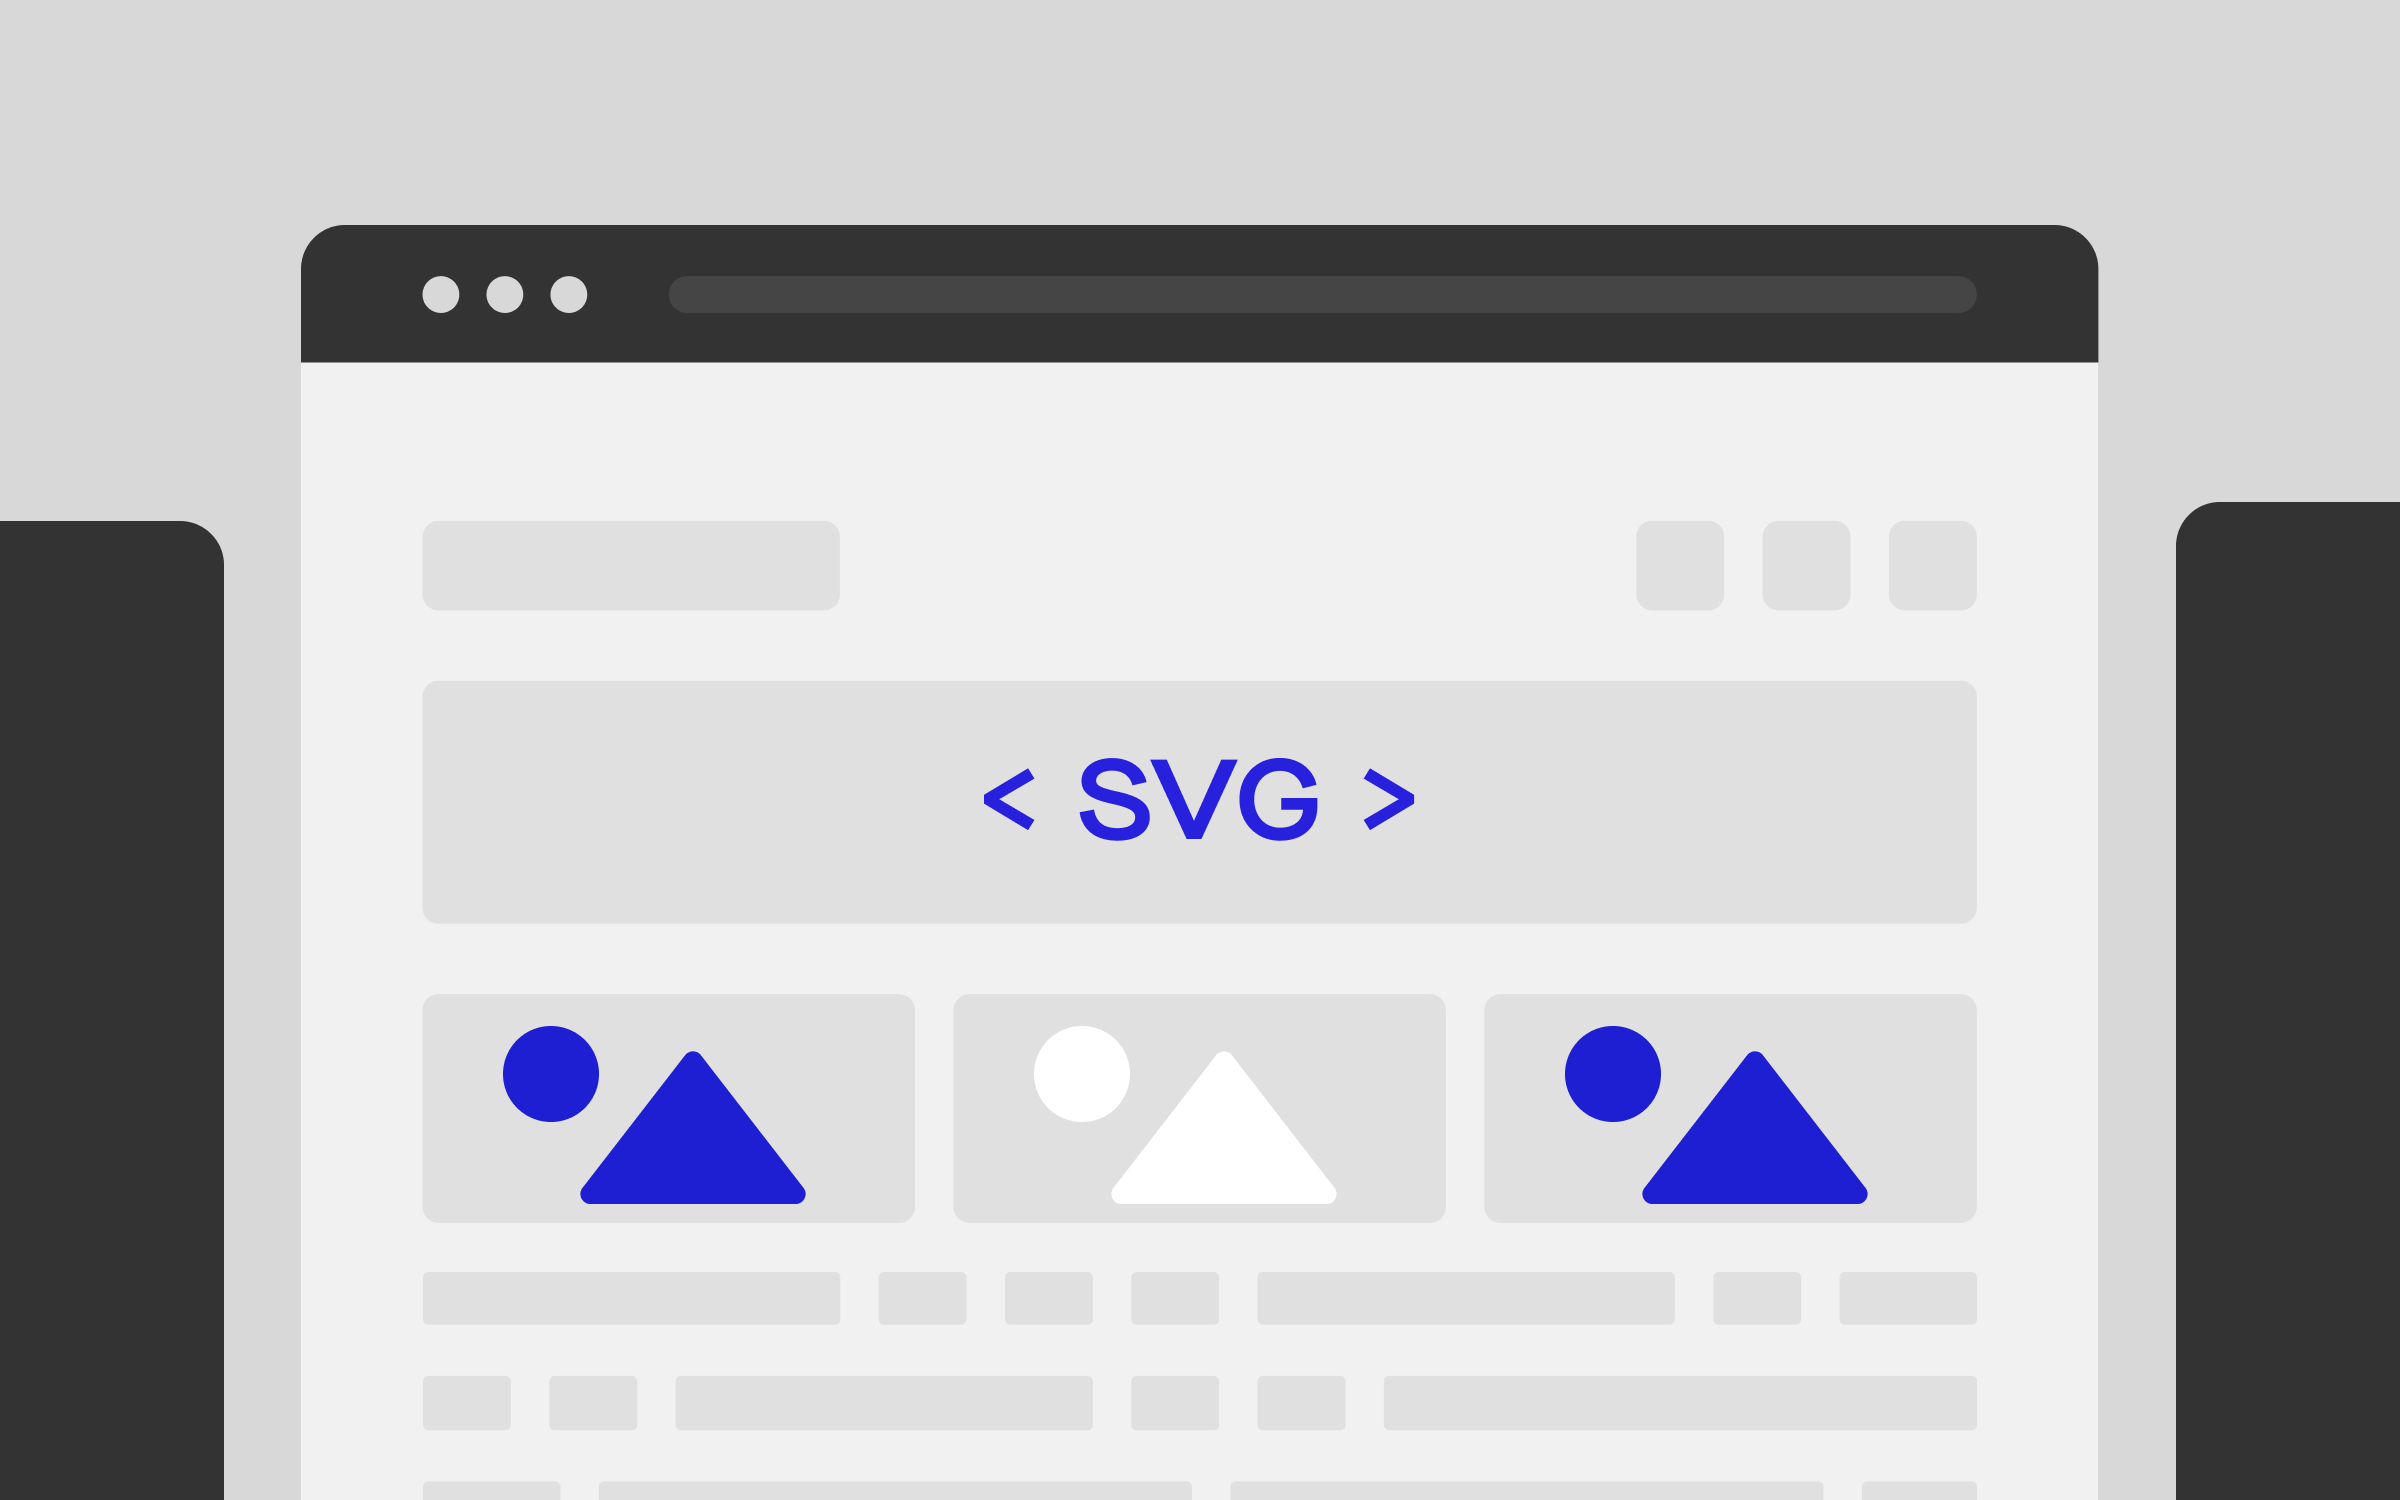 React Native Svg Image Clippath Prototyped